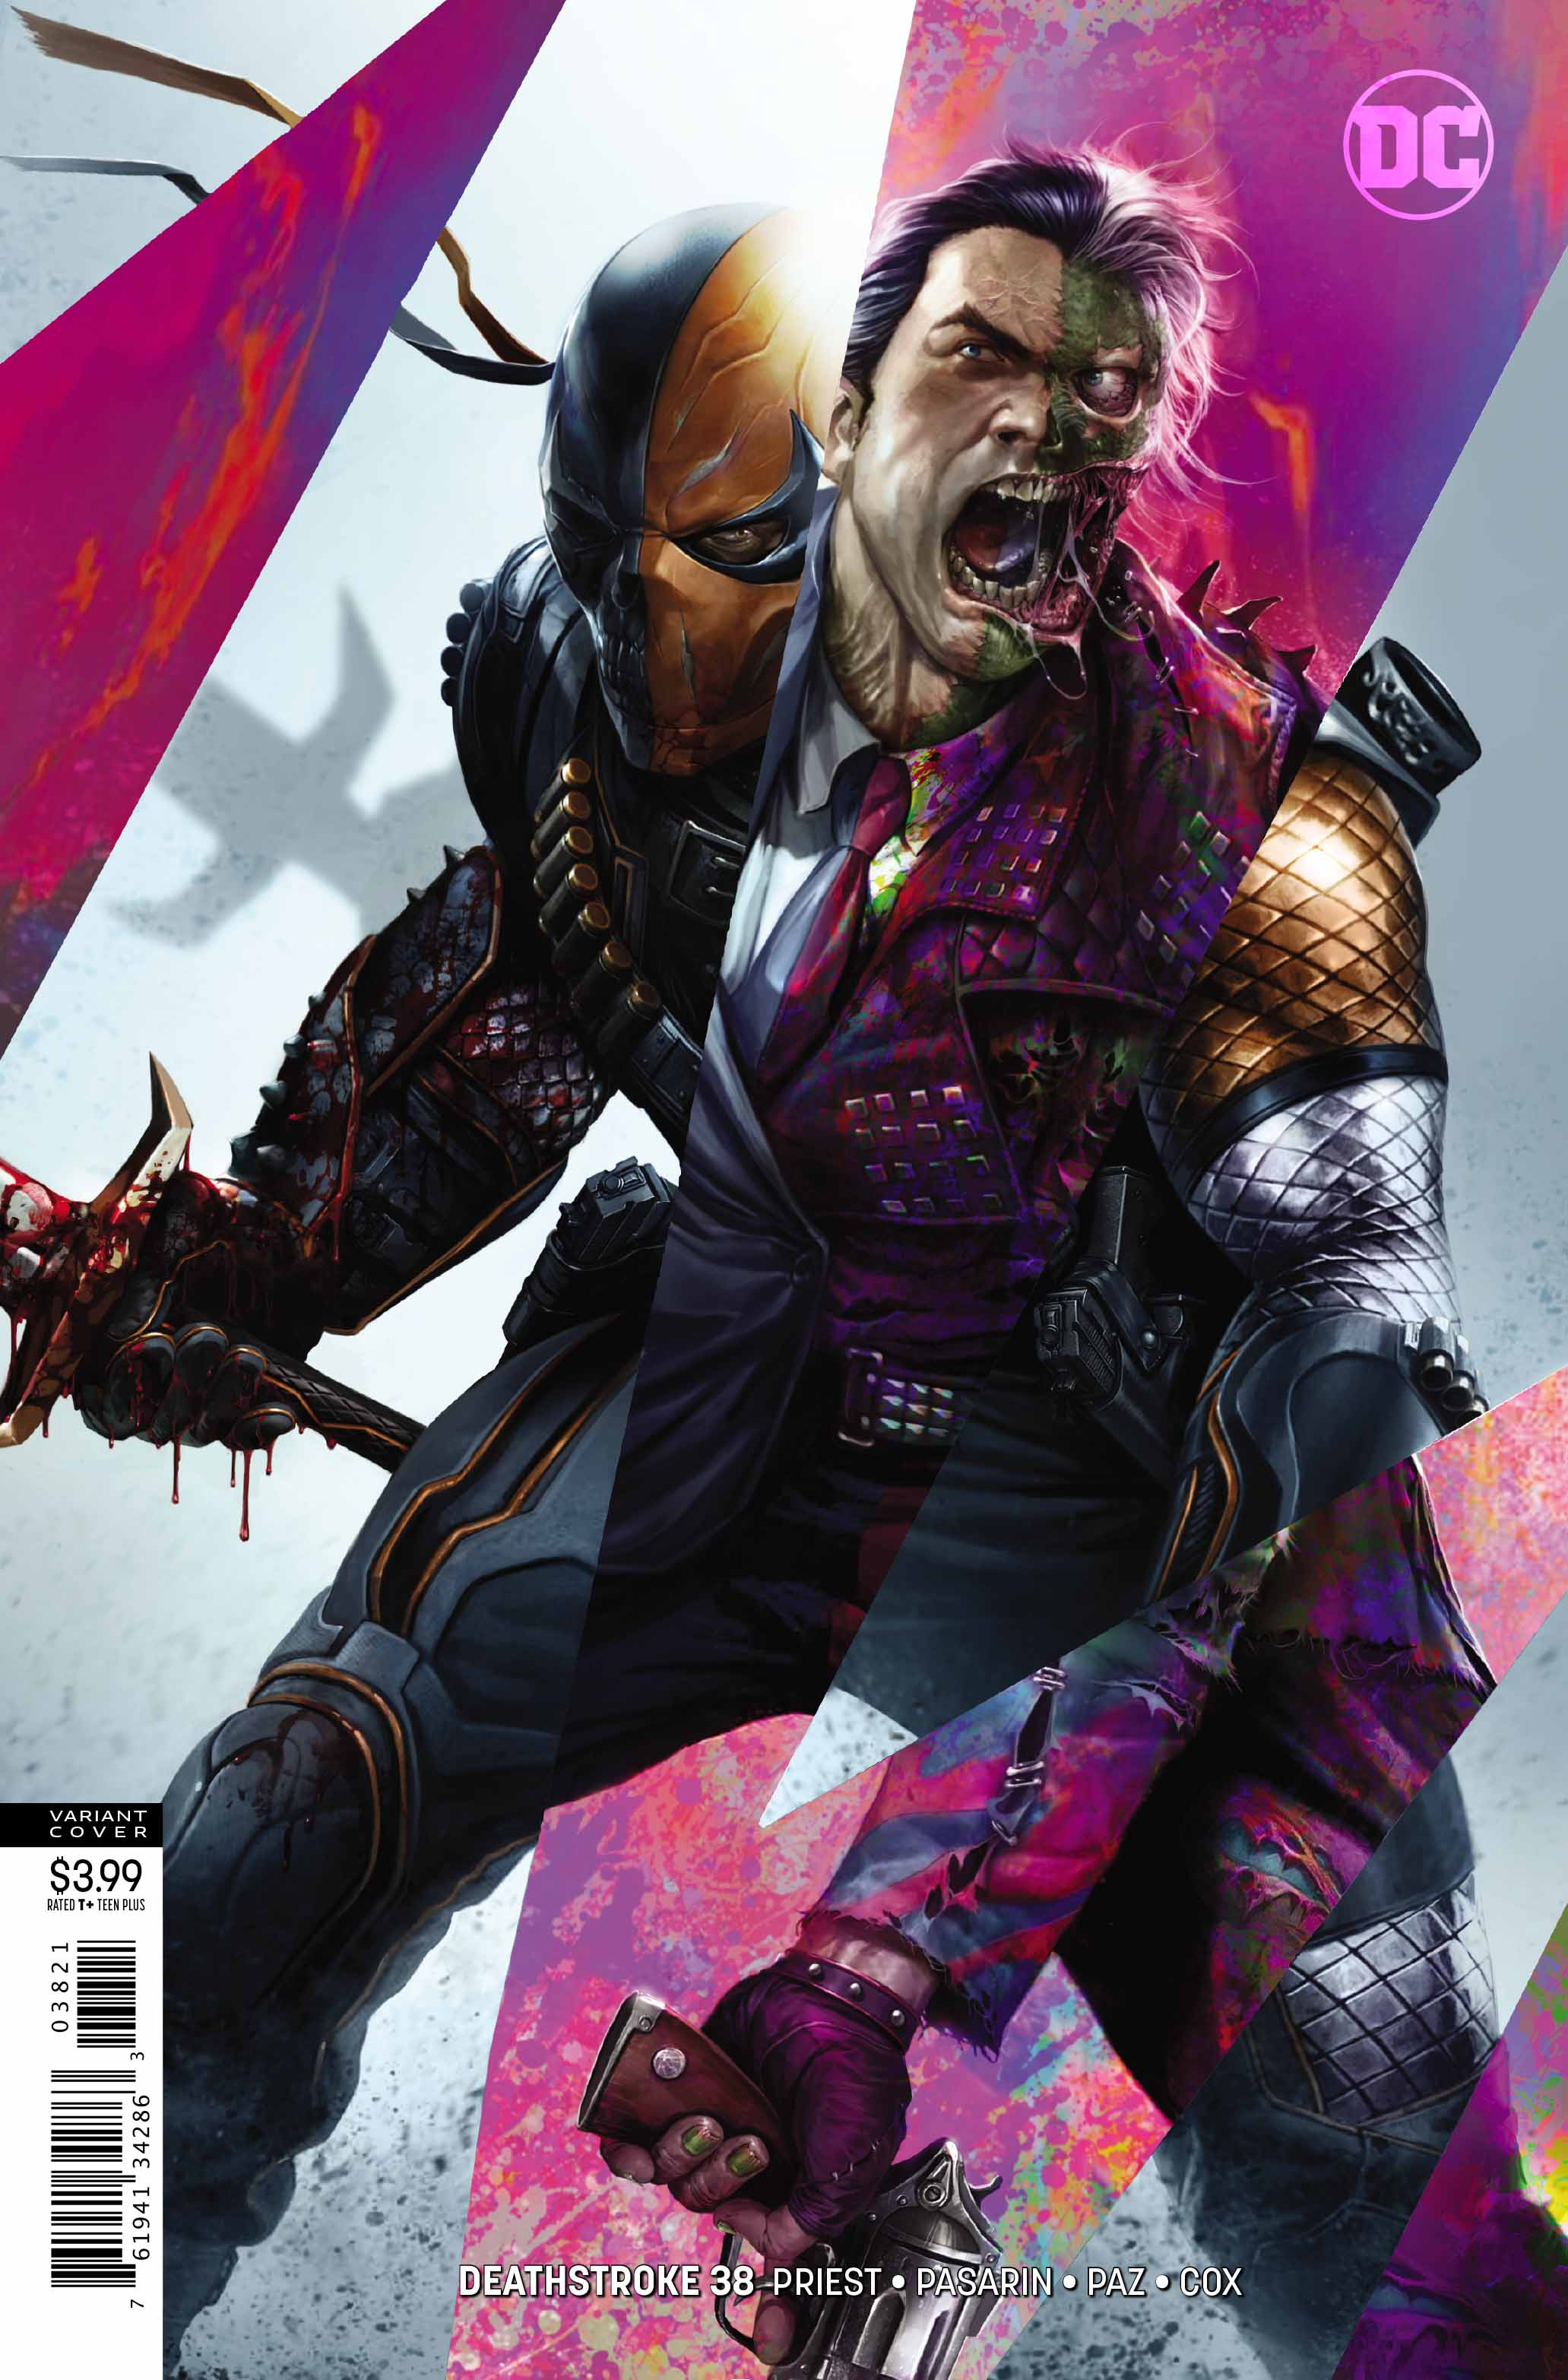 Deathstroke #38 Review